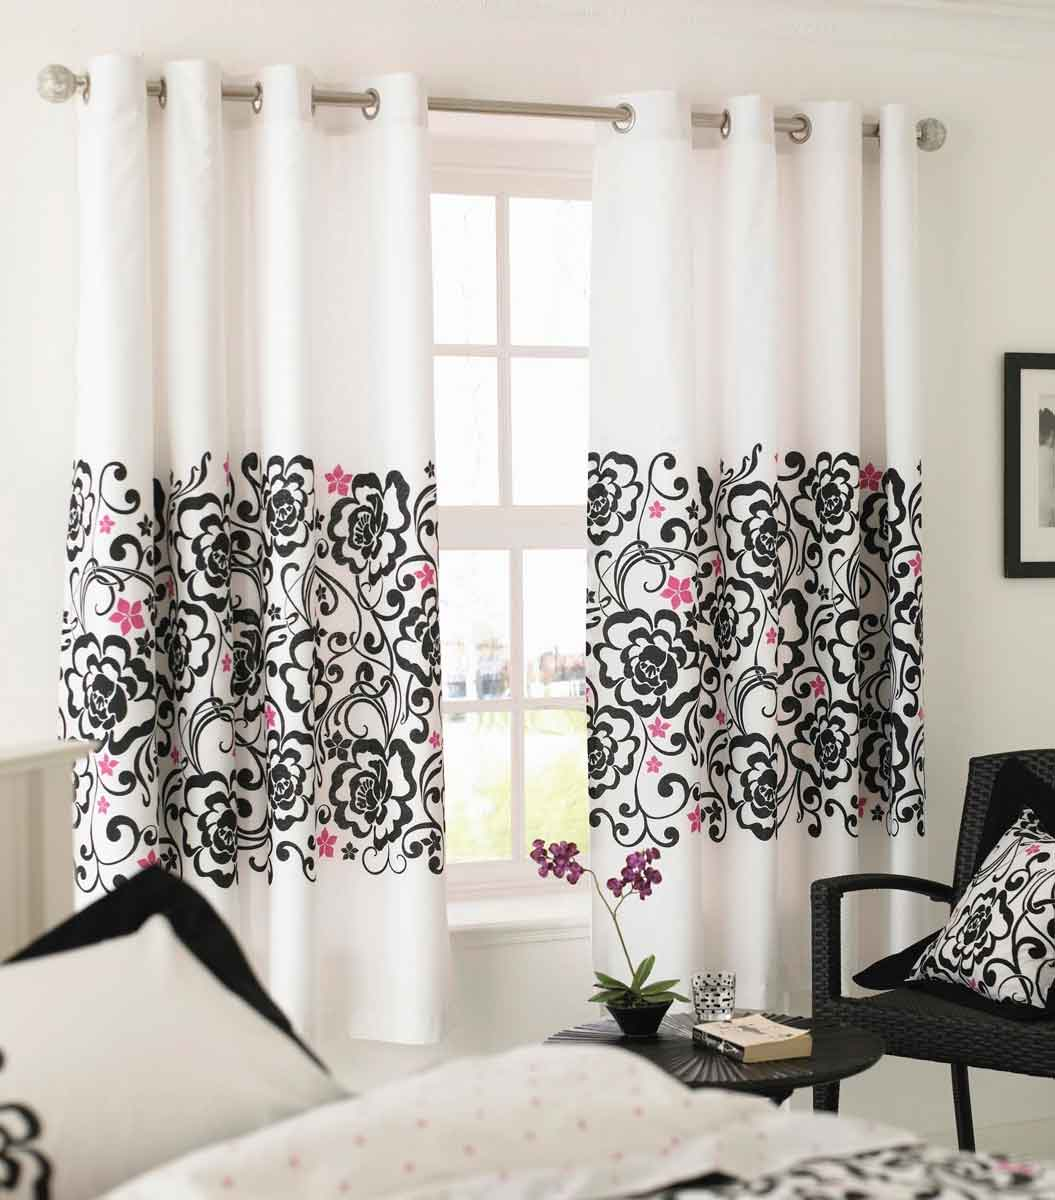 301 moved permanently for White curtains design ideas